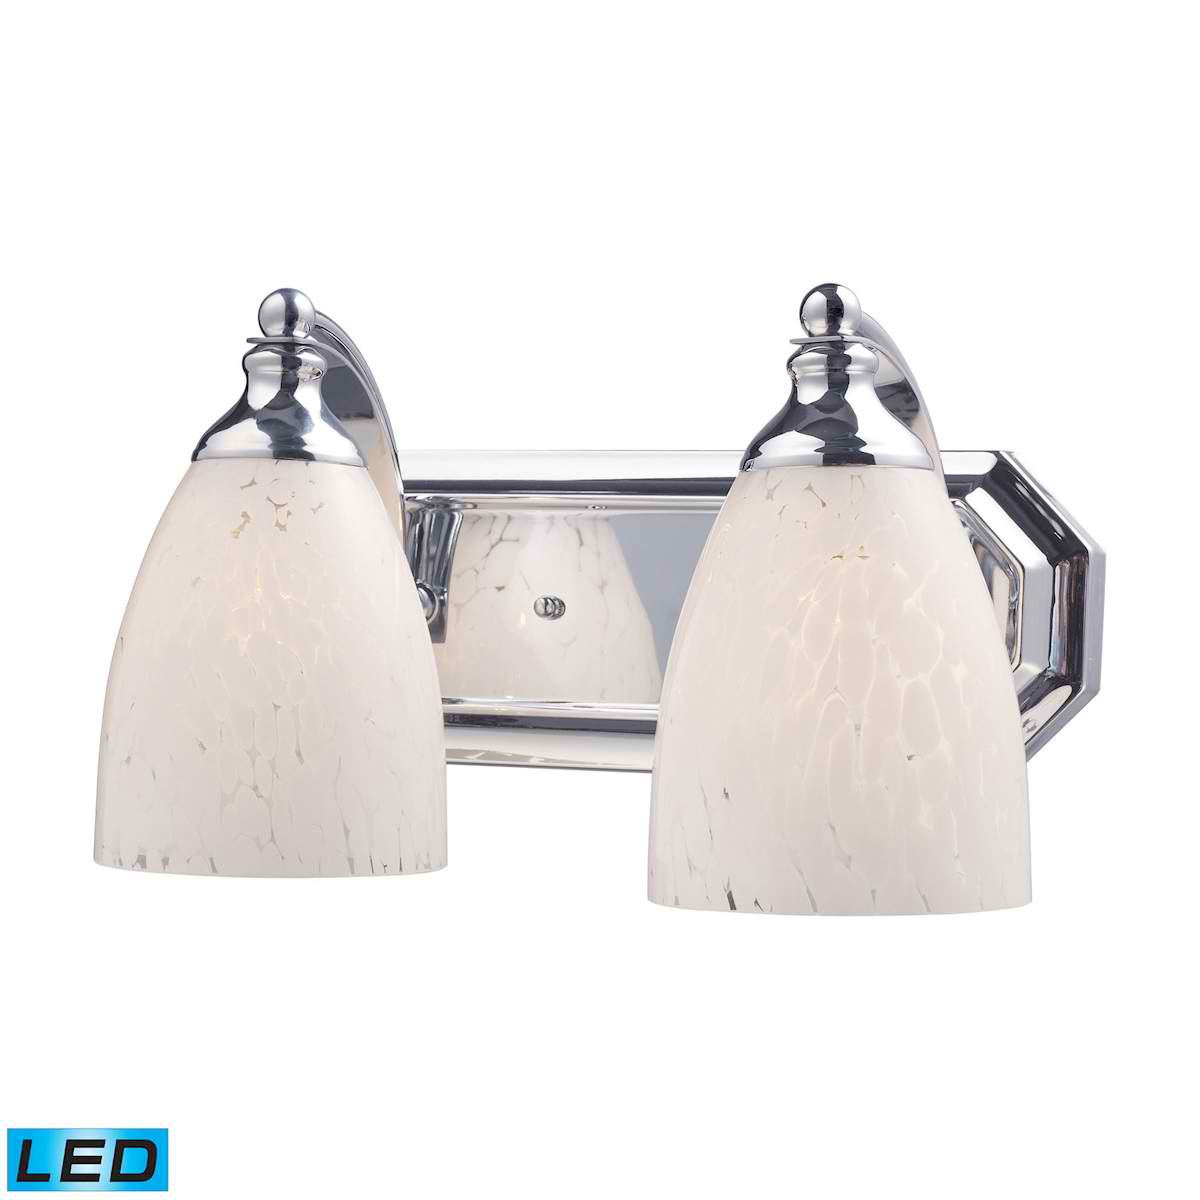 2 Light Vanity in Polished Chrome and Snow White Glass - LED, 800 Lumens (1600 Lumens Total) with Full Scale